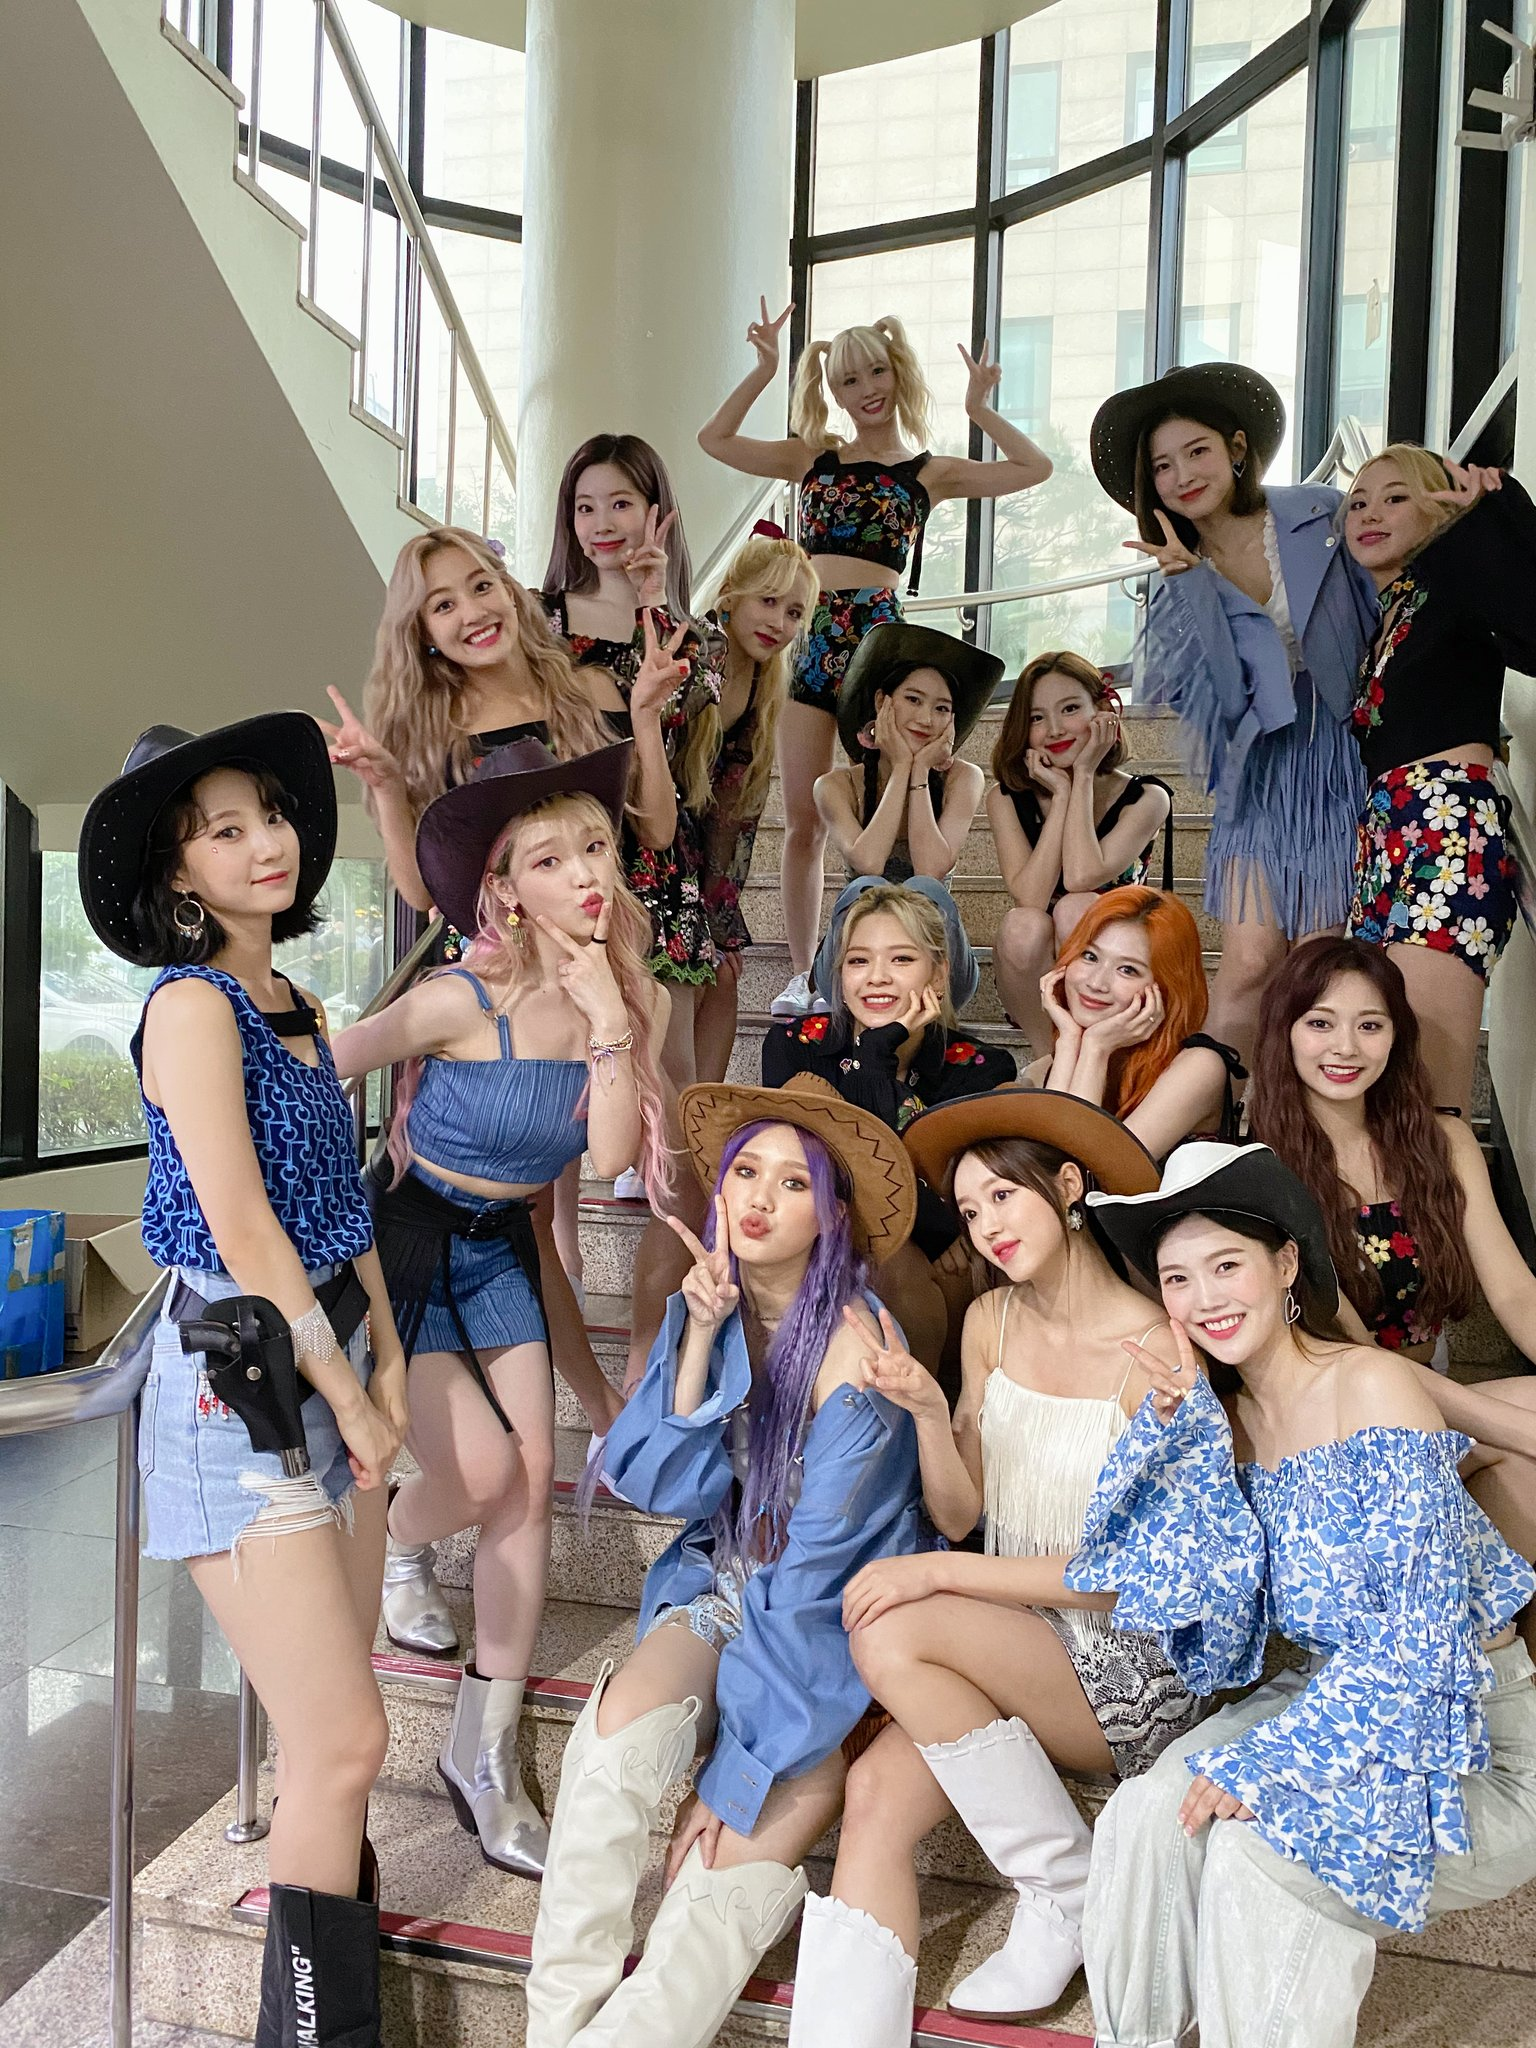 Twice and Oh My Girl